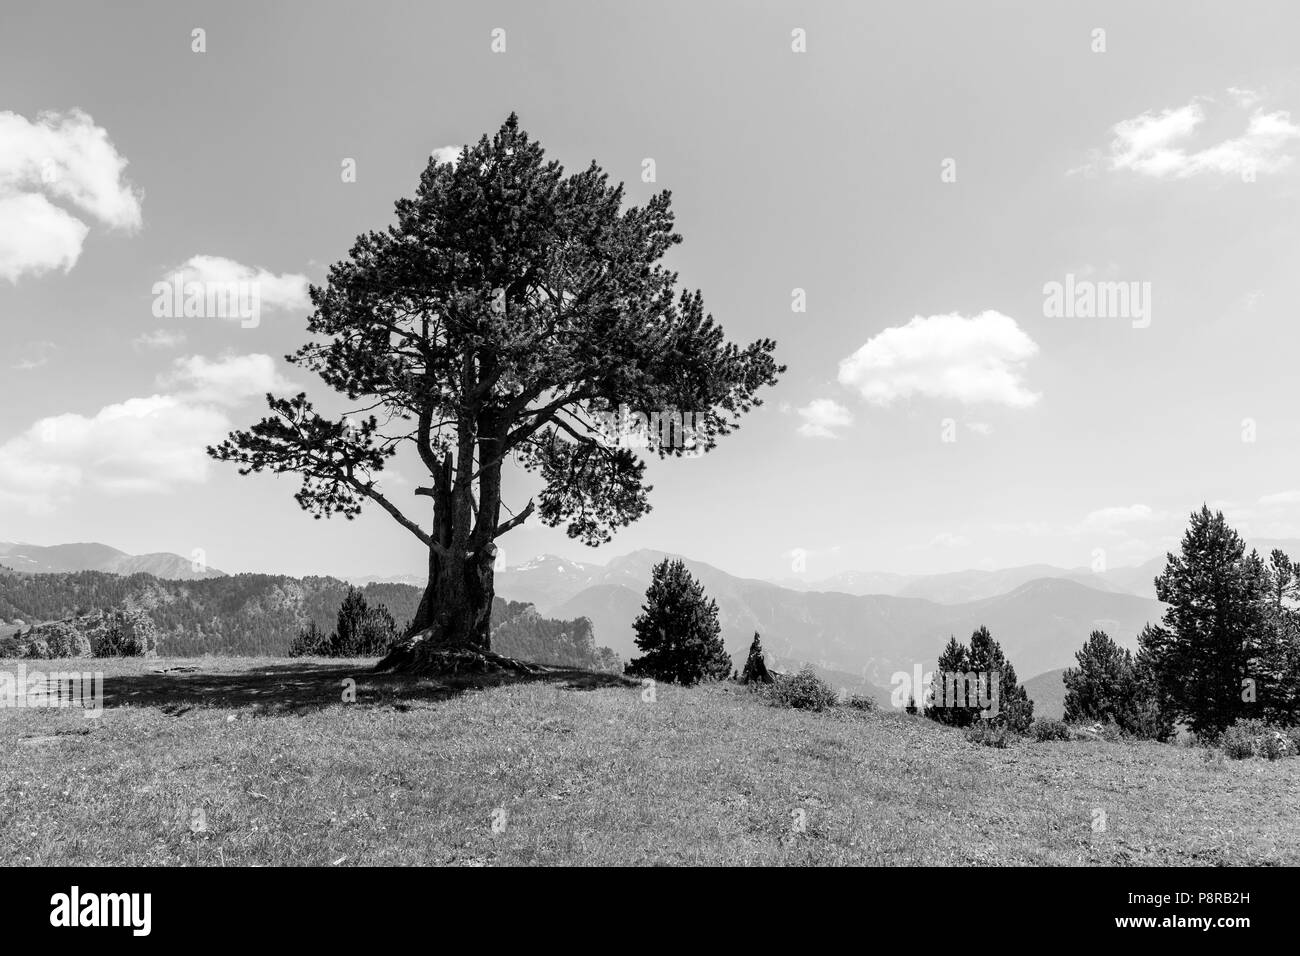 Landscape with pine on the Coll de la botella in the area Pal Arisal in Andorra - Stock Image